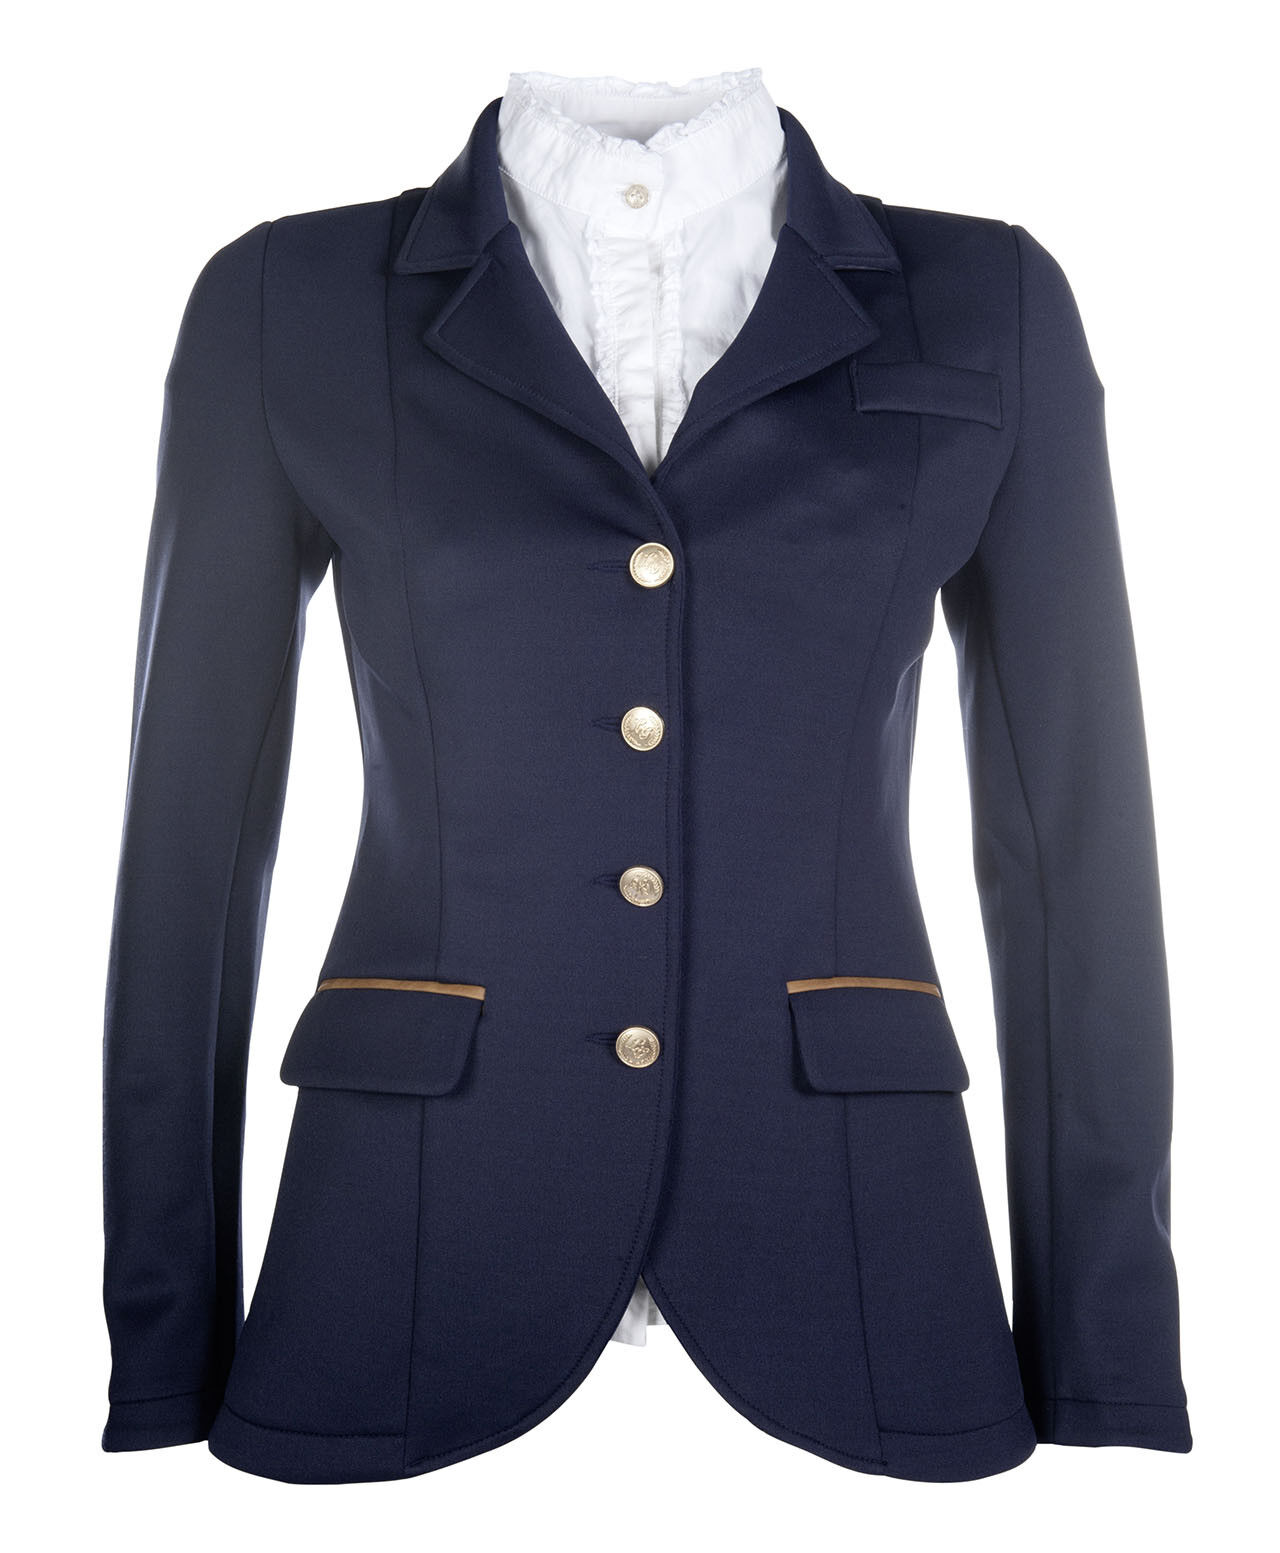 HKM Lauria Garrelli Competition - Show Jacket - Navy with braun piping